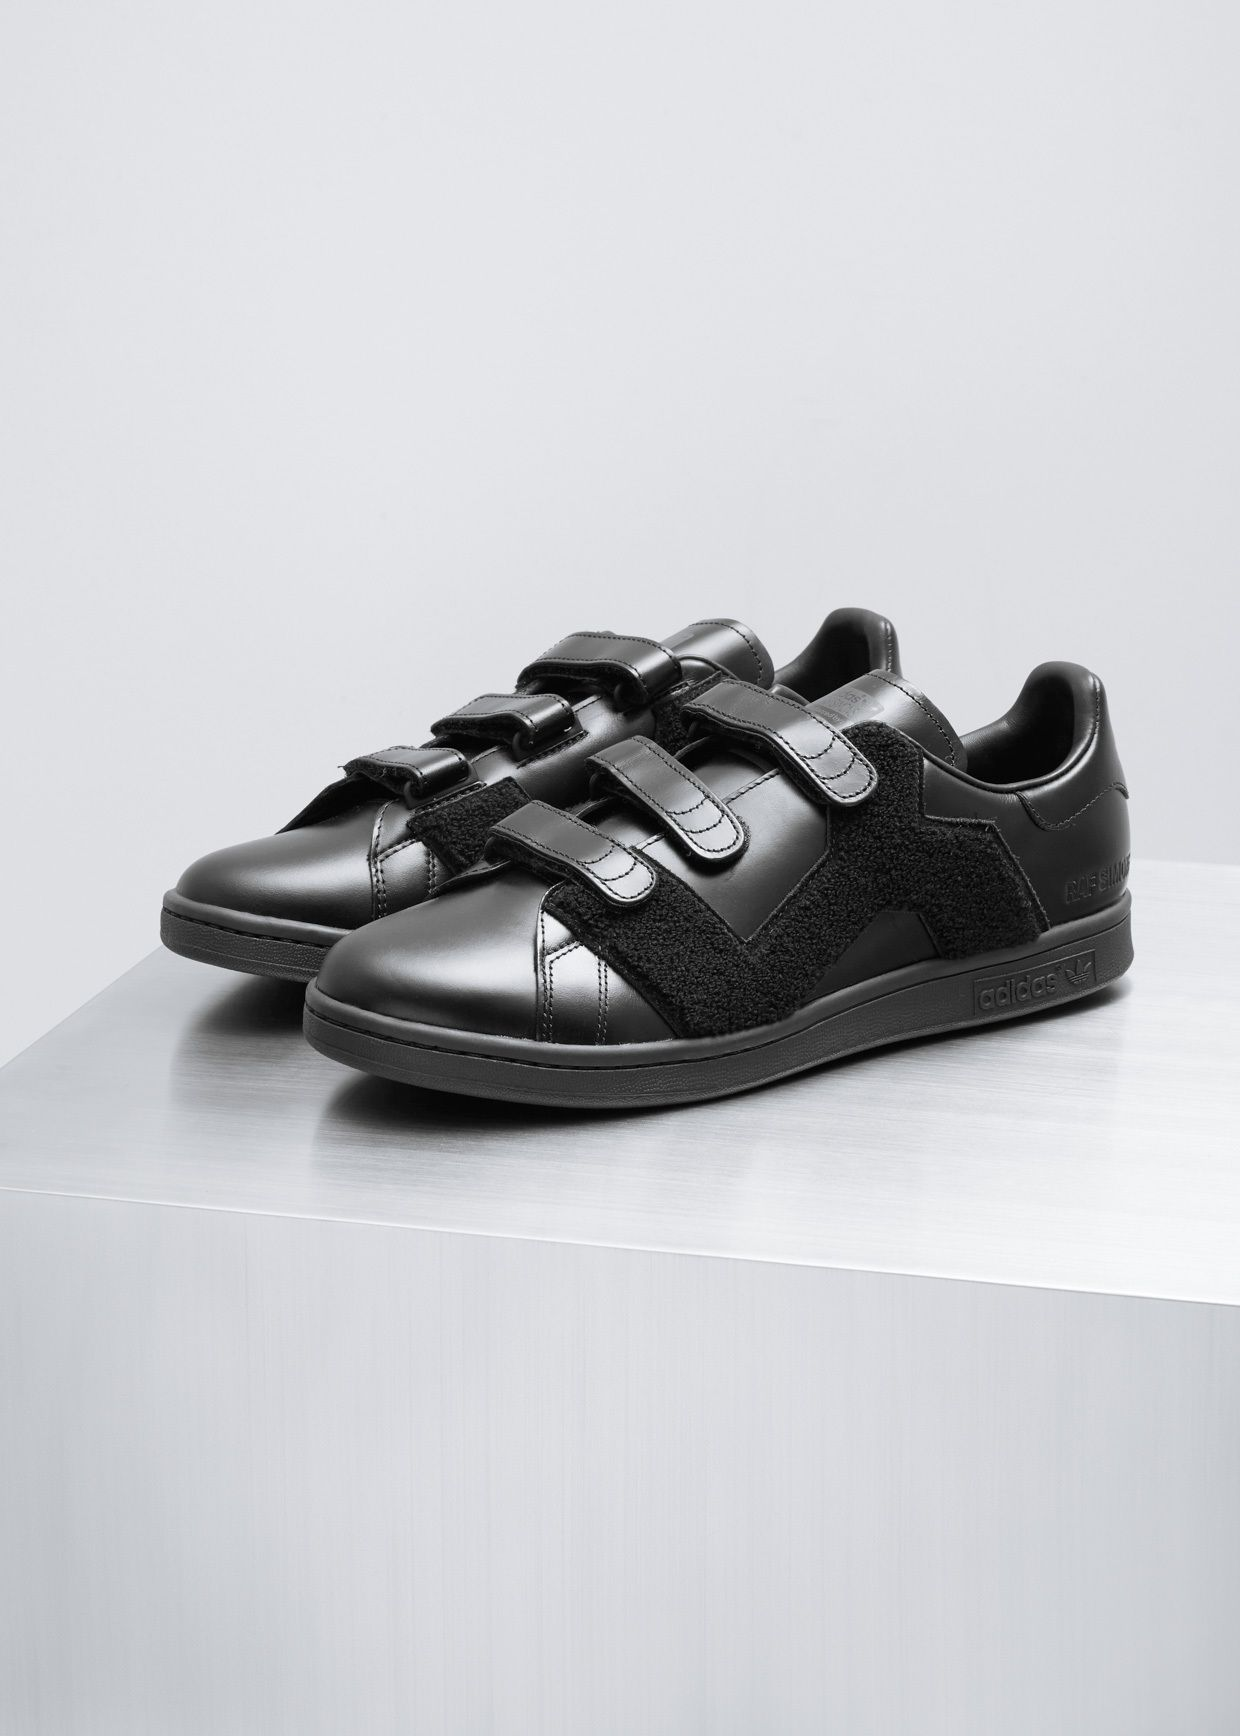 buy popular fresh styles online here Adidas x Raf Simons RS Stan Smith Comfort Badge Sneaker ...